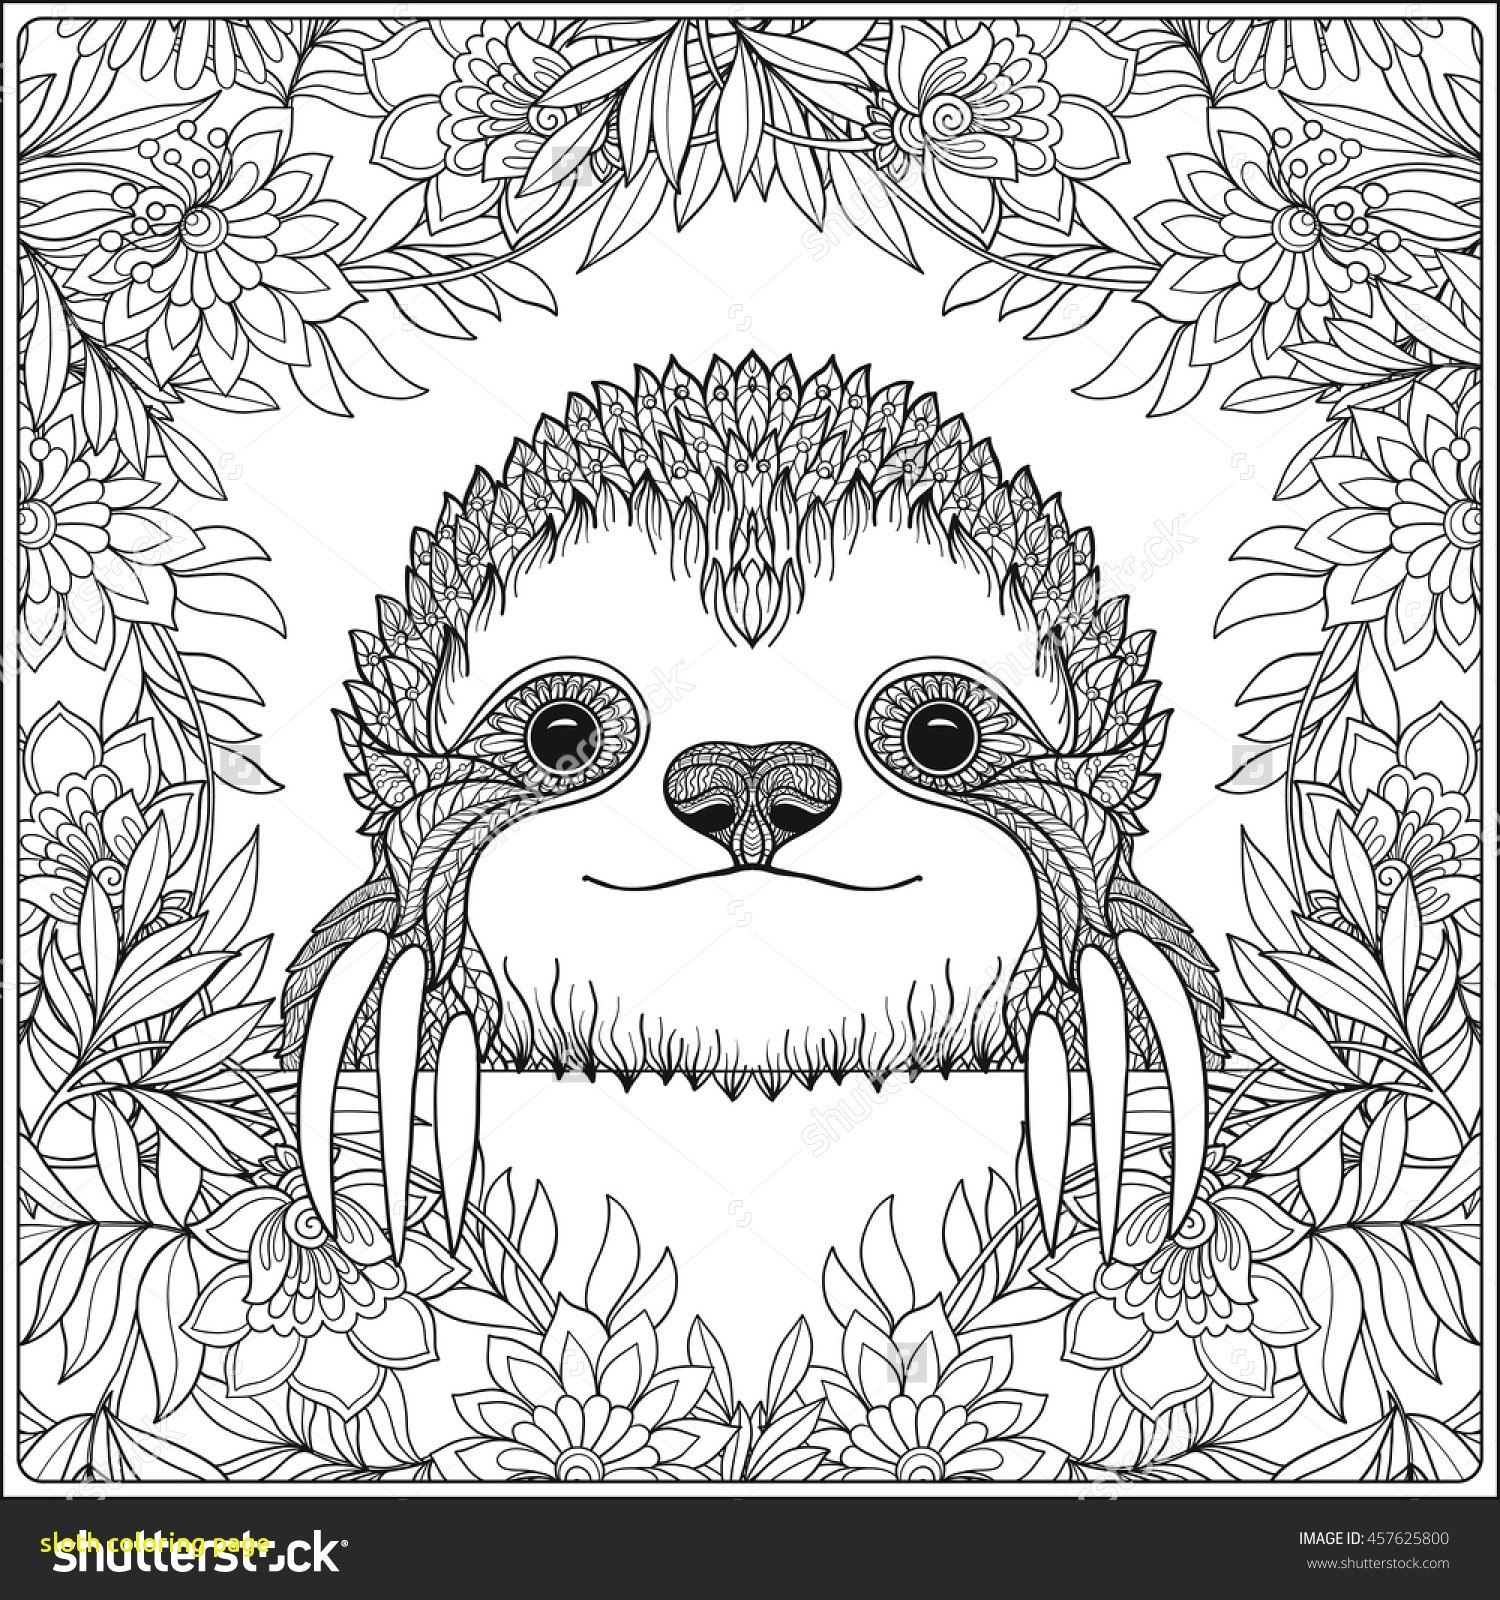 printable sloth coloring pages Download-Sloth Coloring Pages 11-h